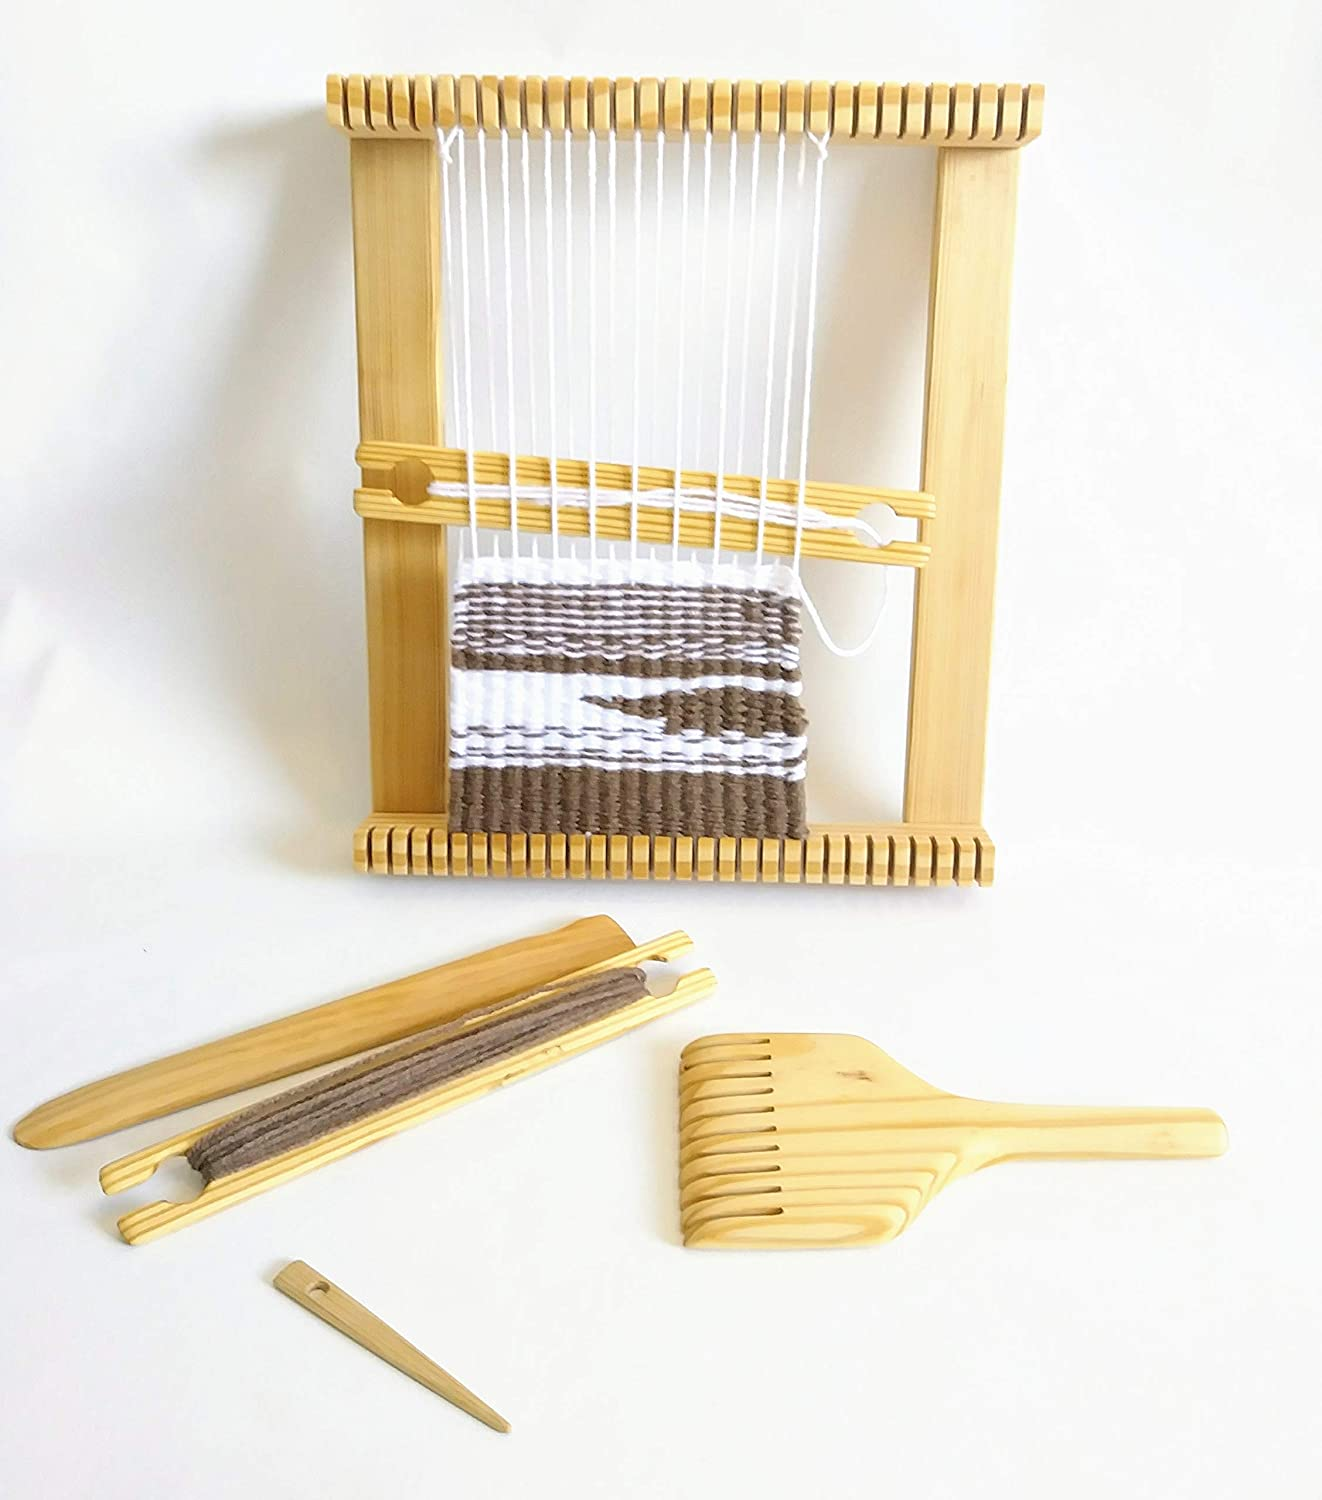 Large 36x36 Inch Weaving Loom Kit with Accessories. ALE Crafting supplies 4336906359